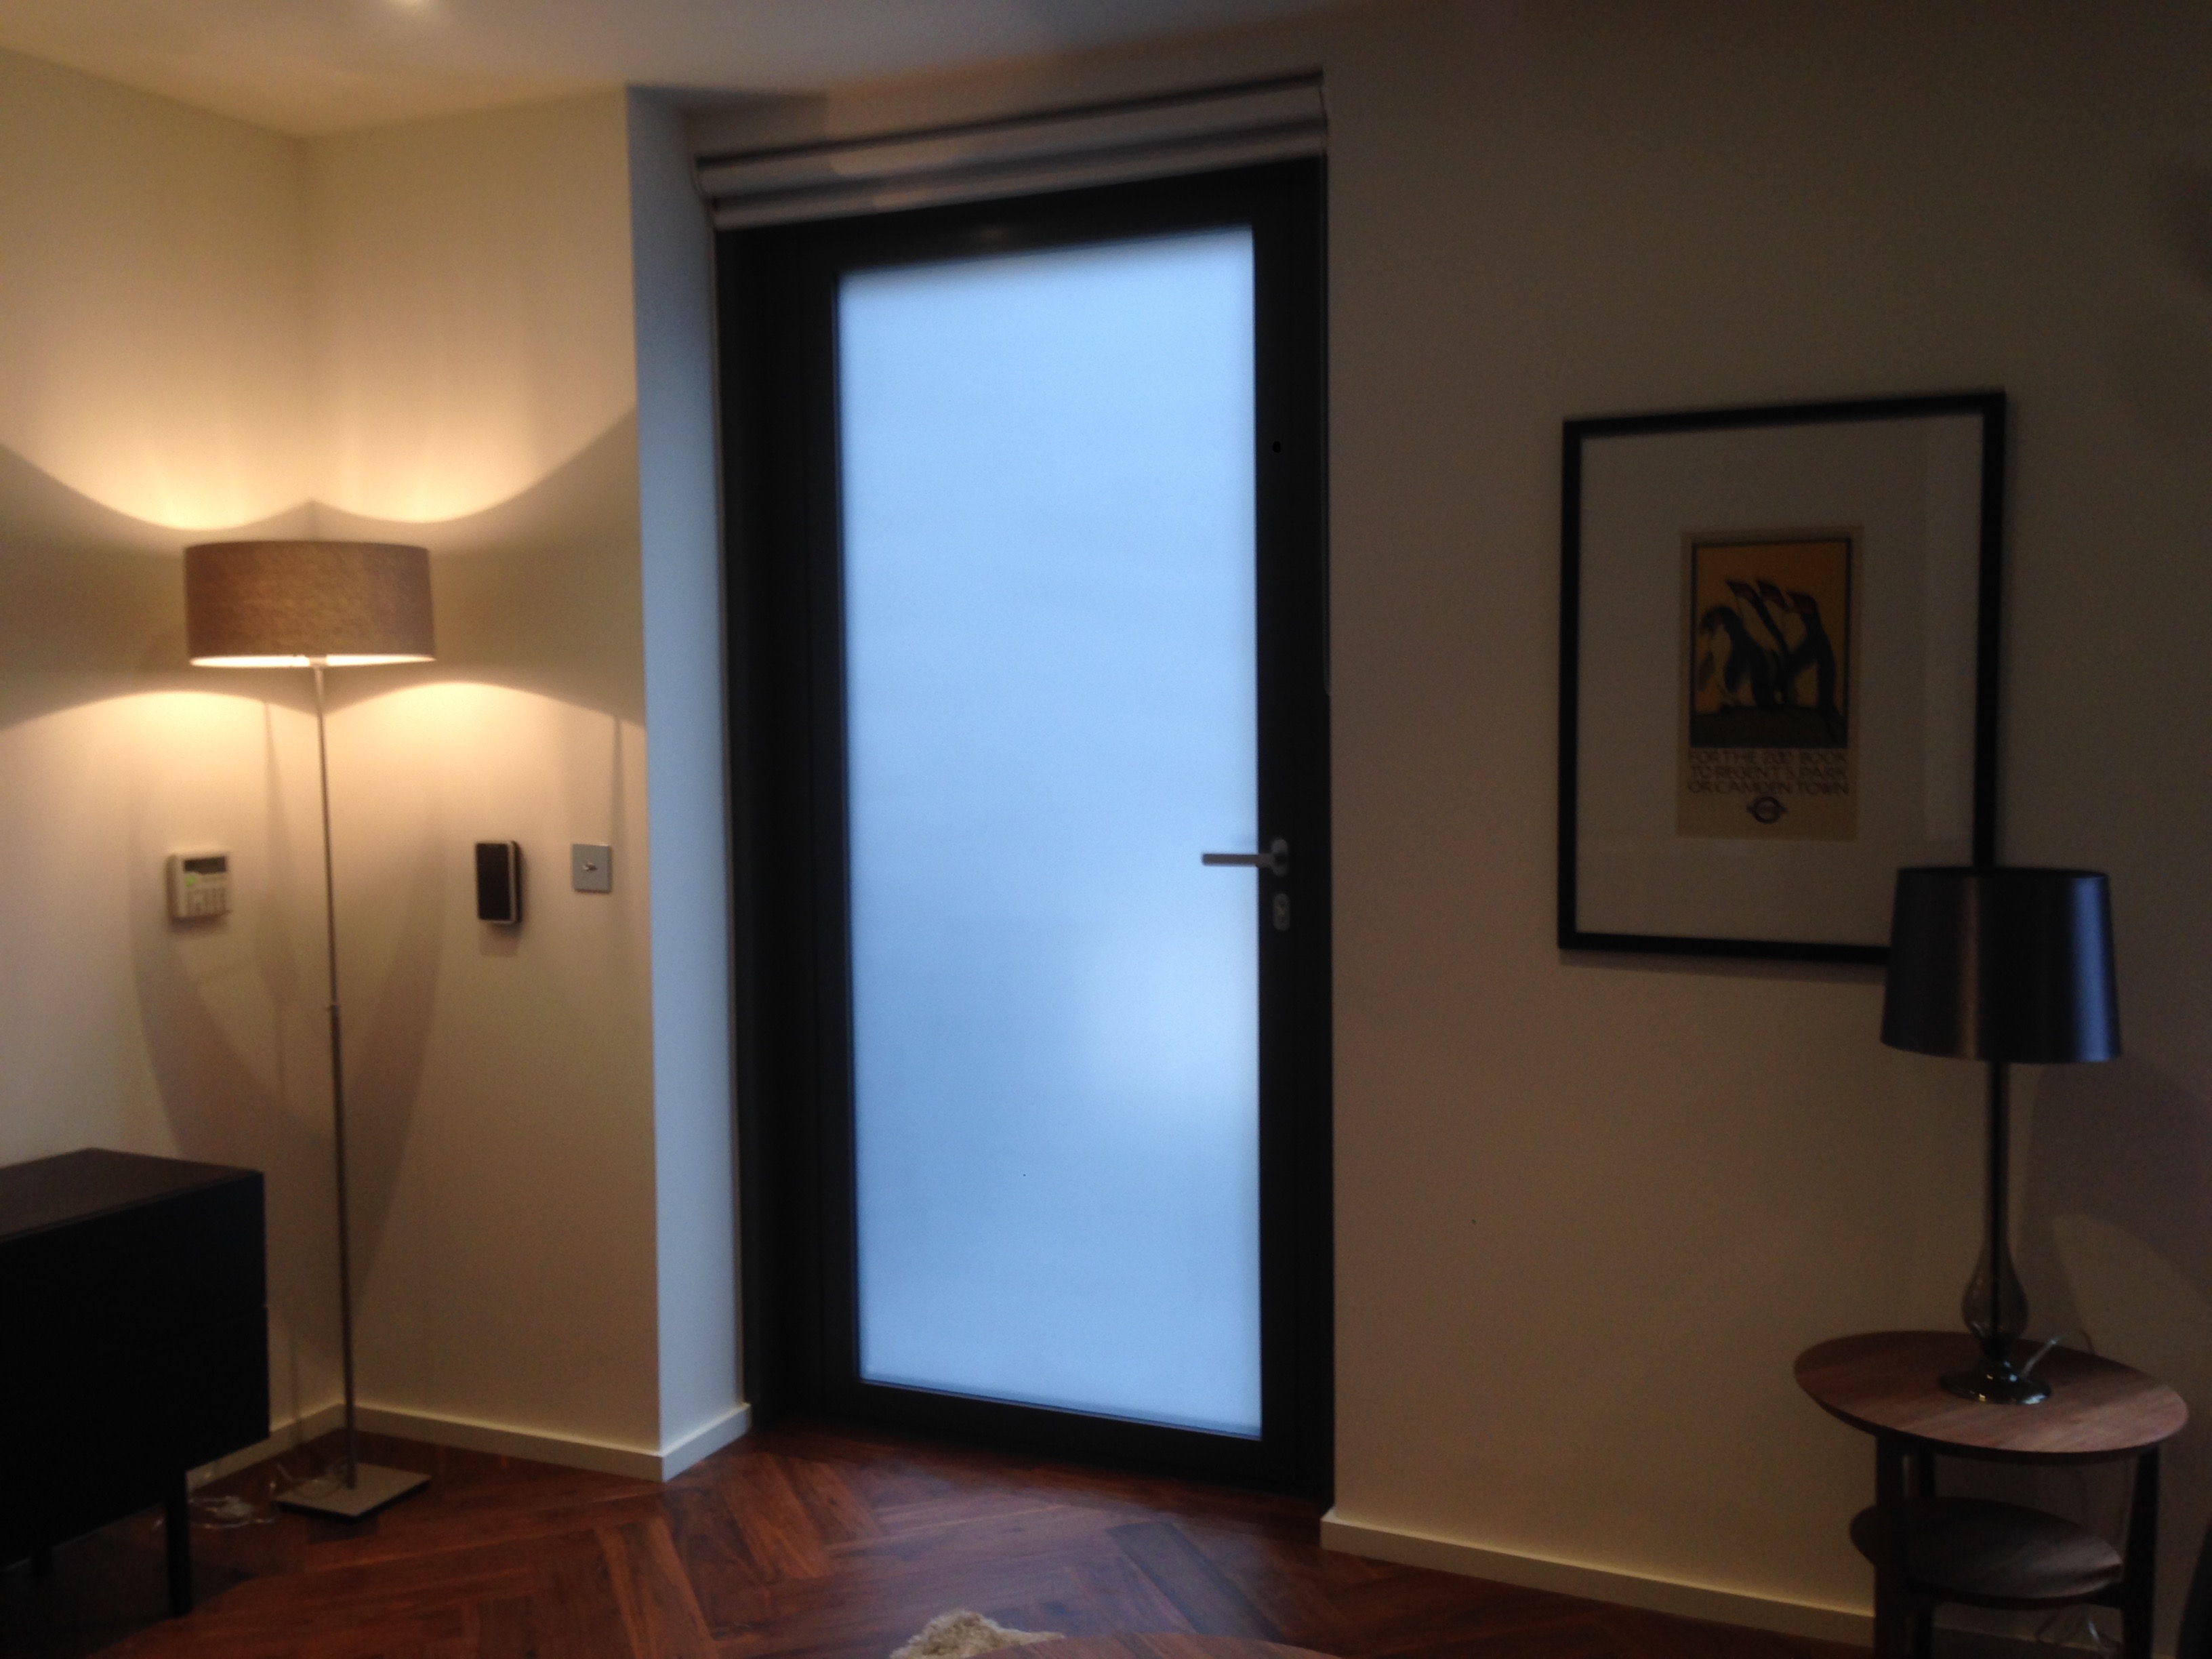 Privacy Film Installation - After